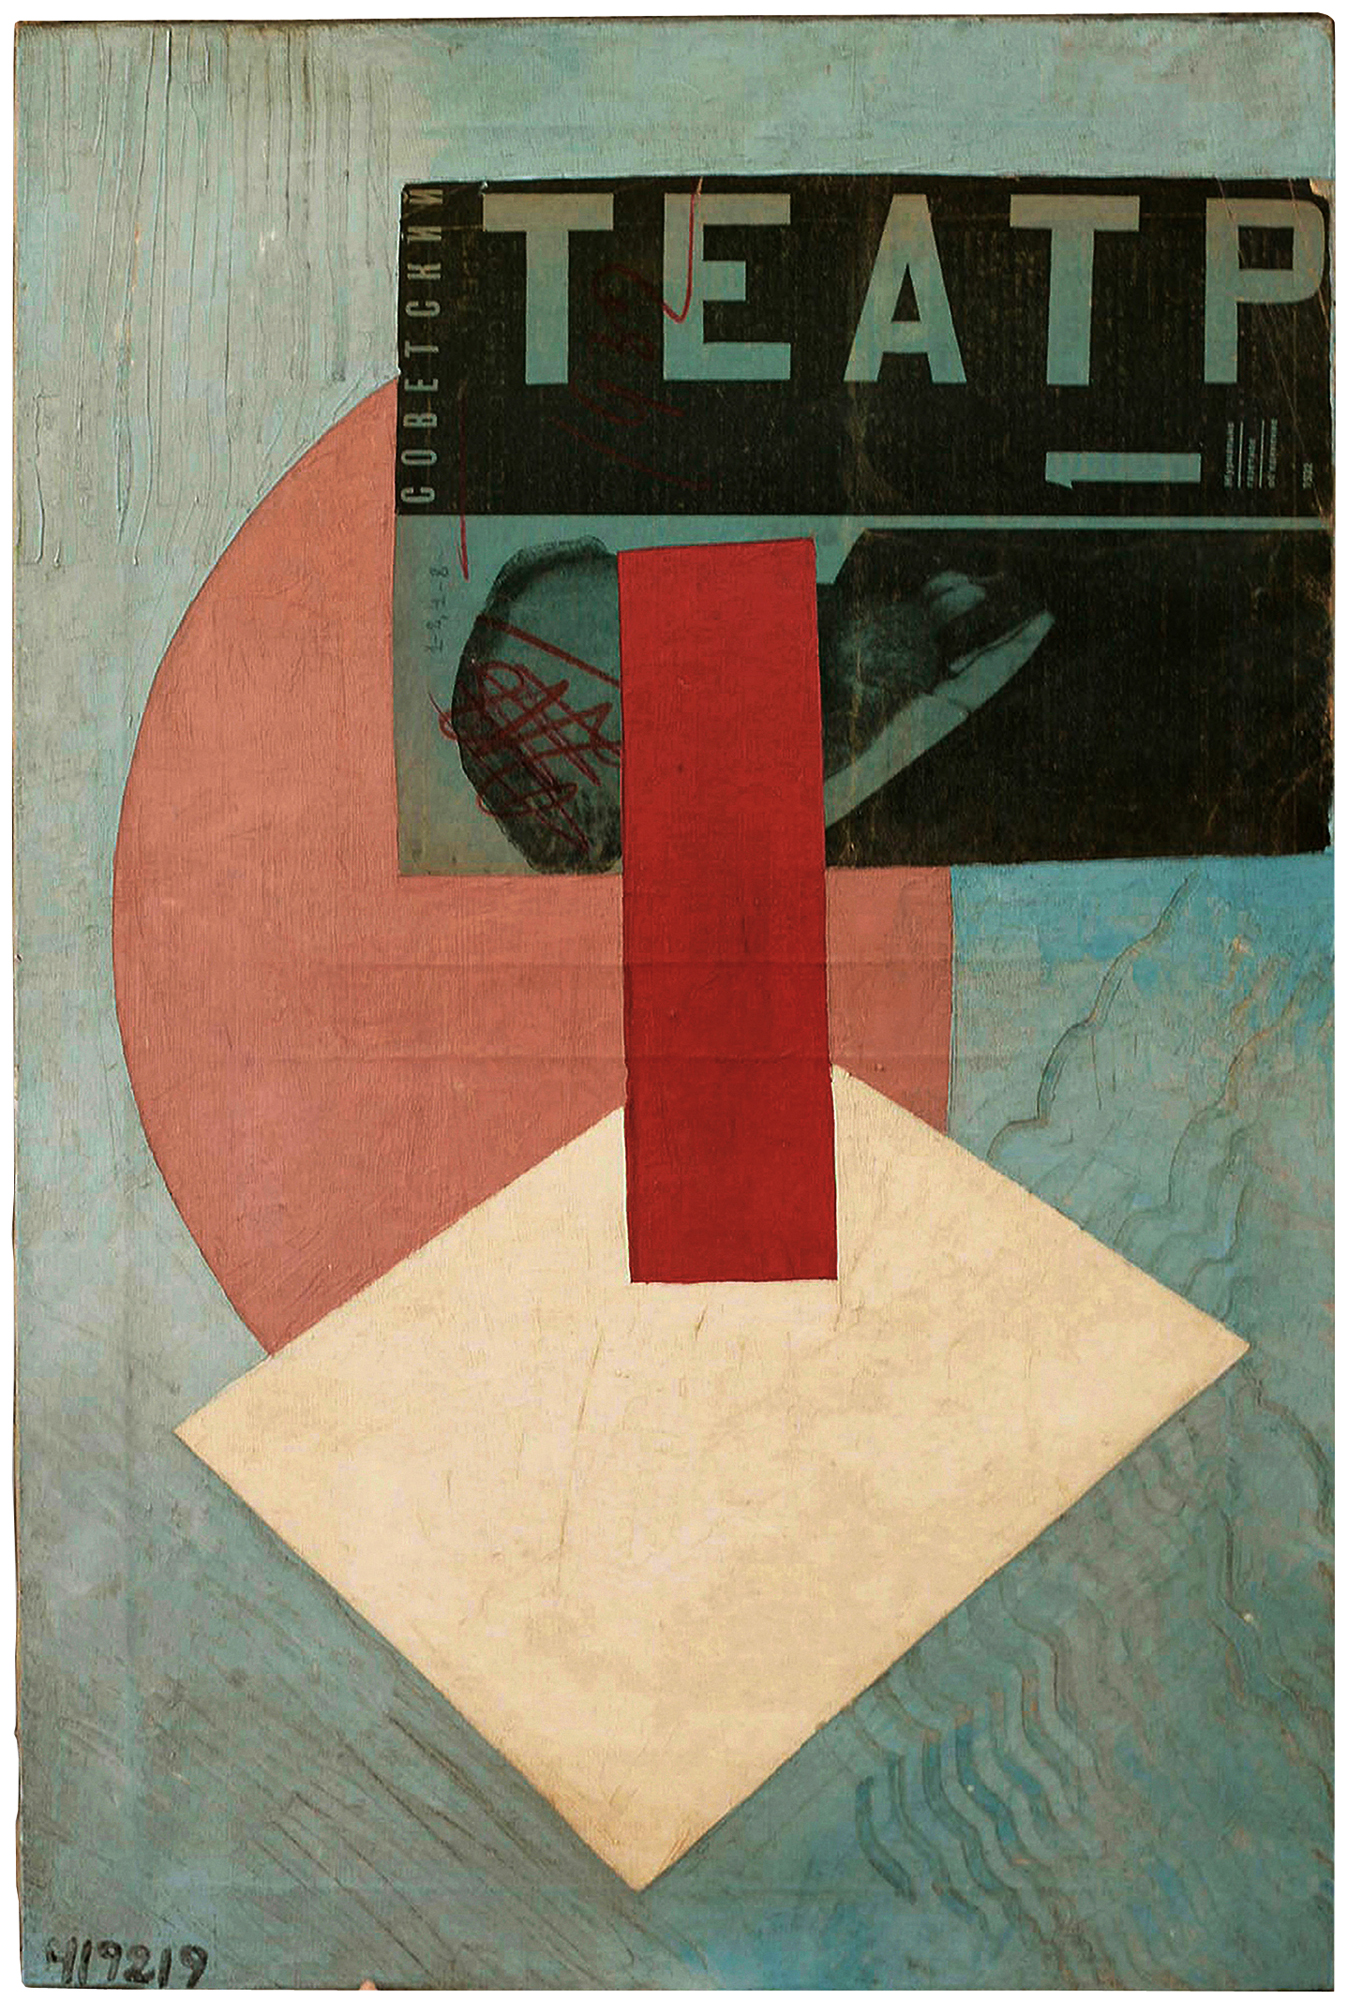 """Unattributed. Unsigned. In the style of Nathan Altman.""""419219"""" on lower left front, with page from Soviet Theater no 1 magazine, 1932.  Mixed media on canvas.60 x 40 cm."""